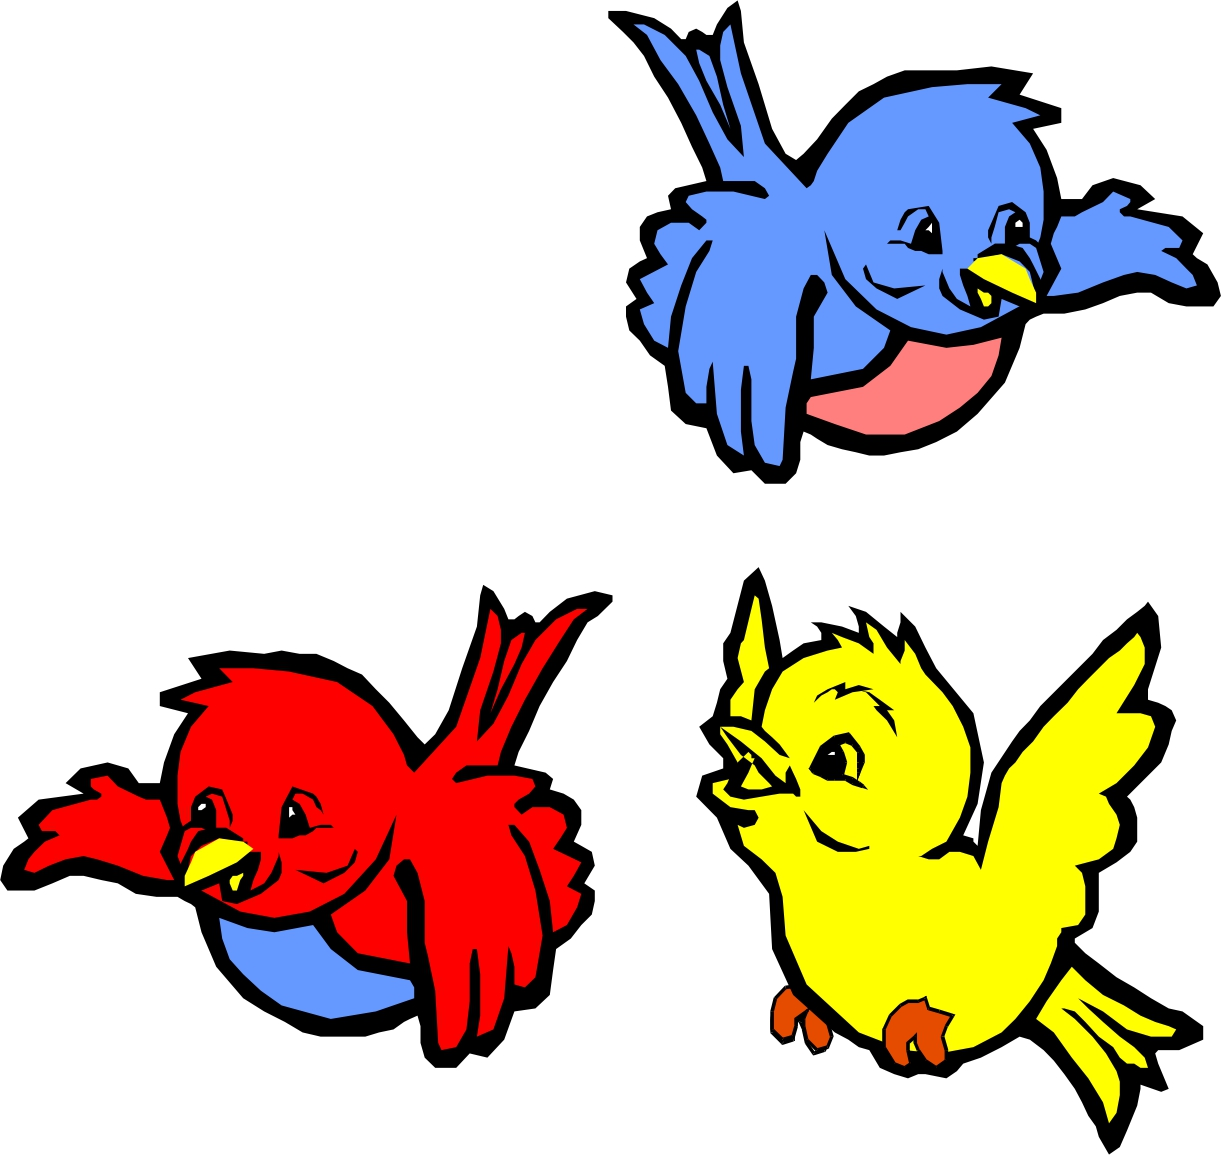 A bird cartoon clipart clipart library stock Free Animated Bird Cliparts, Download Free Clip Art, Free Clip Art ... clipart library stock